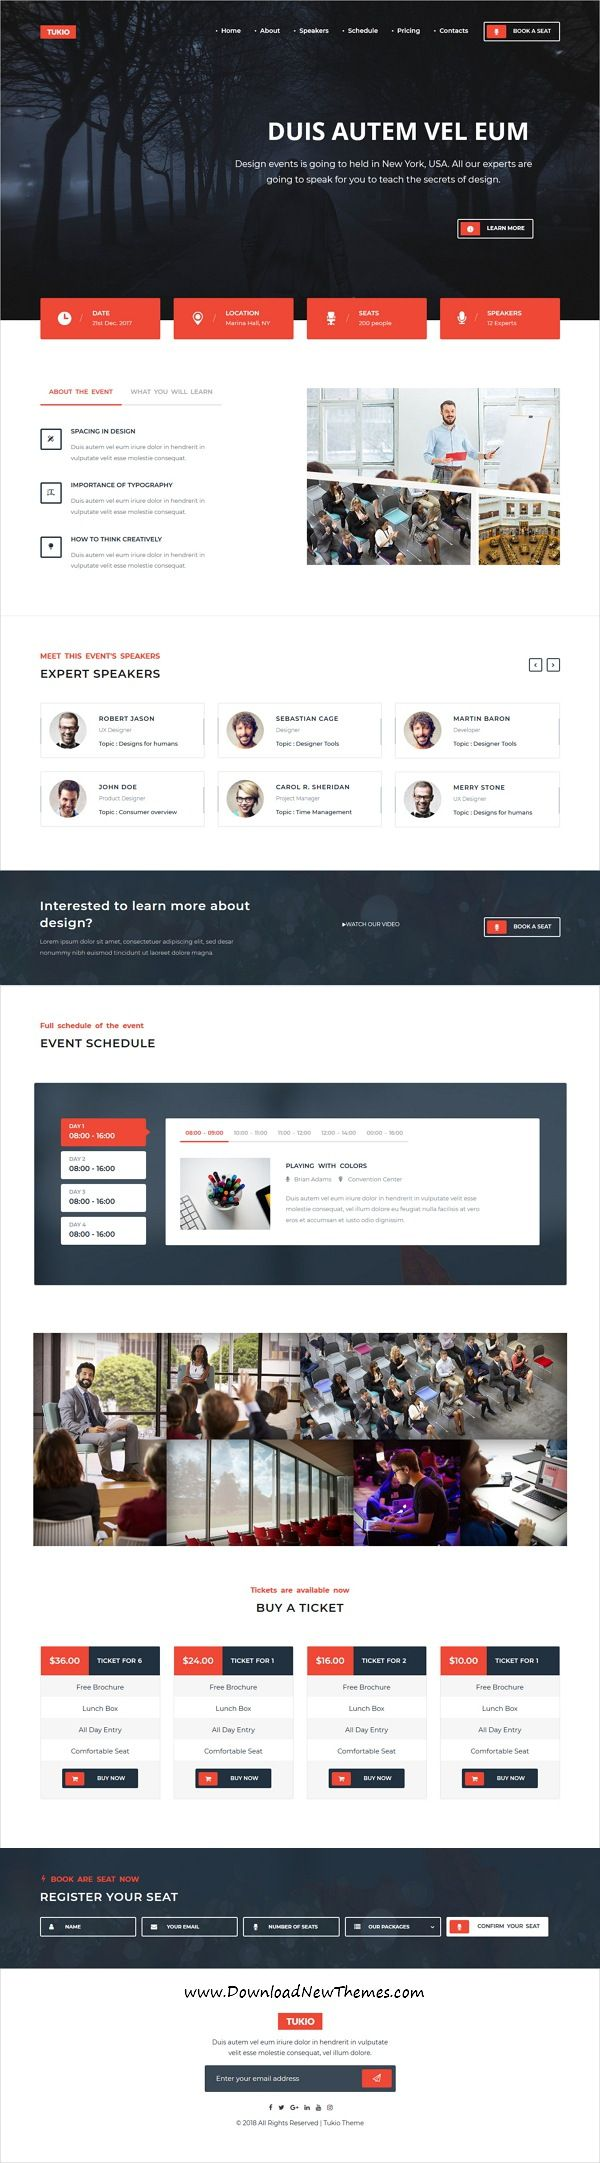 Tukio is clean and modern design 5in1 responsive WordPress #template for seminar, #conferences, event and #webinar website to live preview & download click on image or Visit #webdevelopment